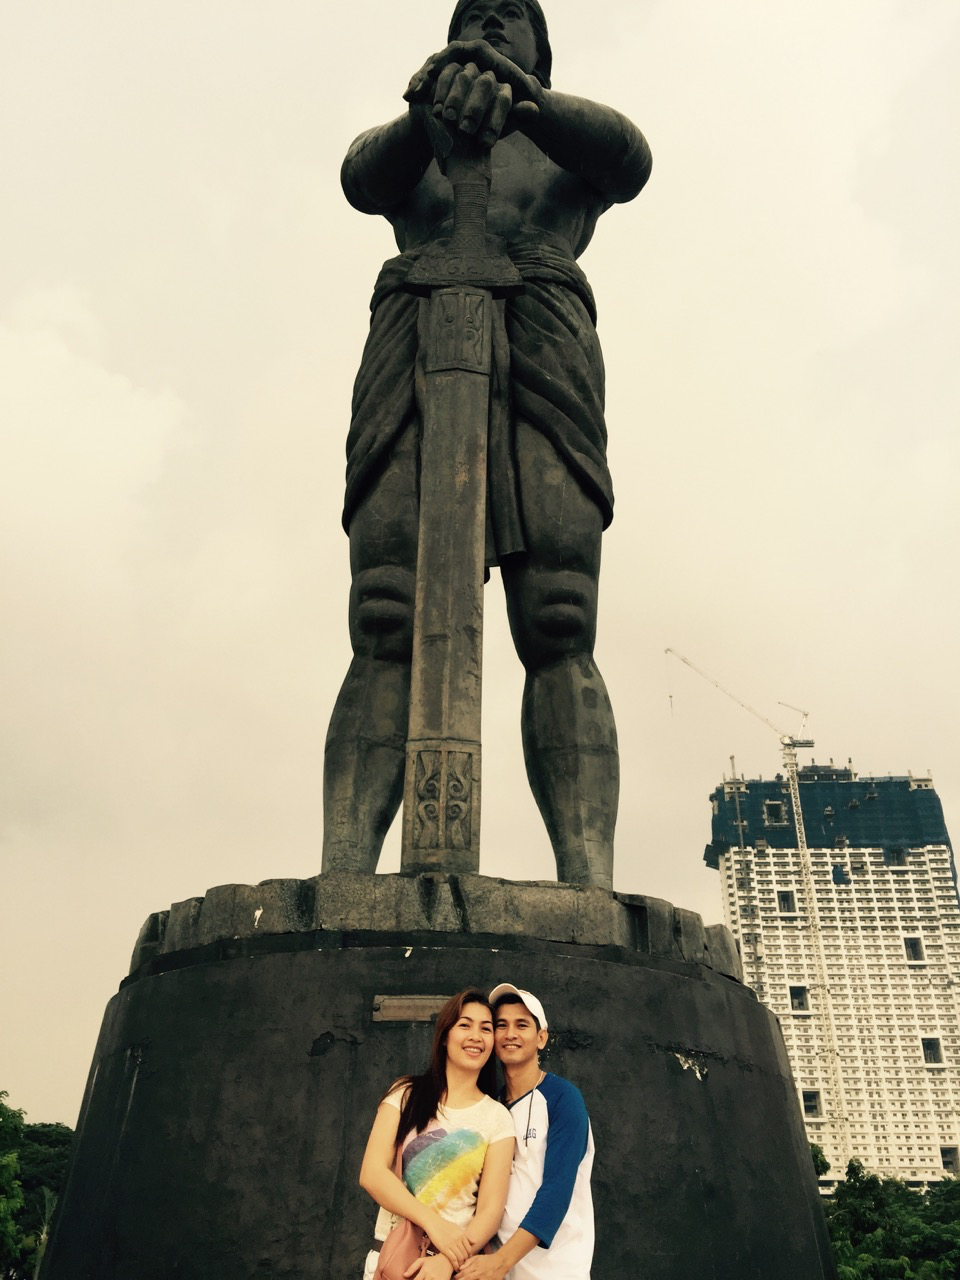 nichol and lyn at the monument